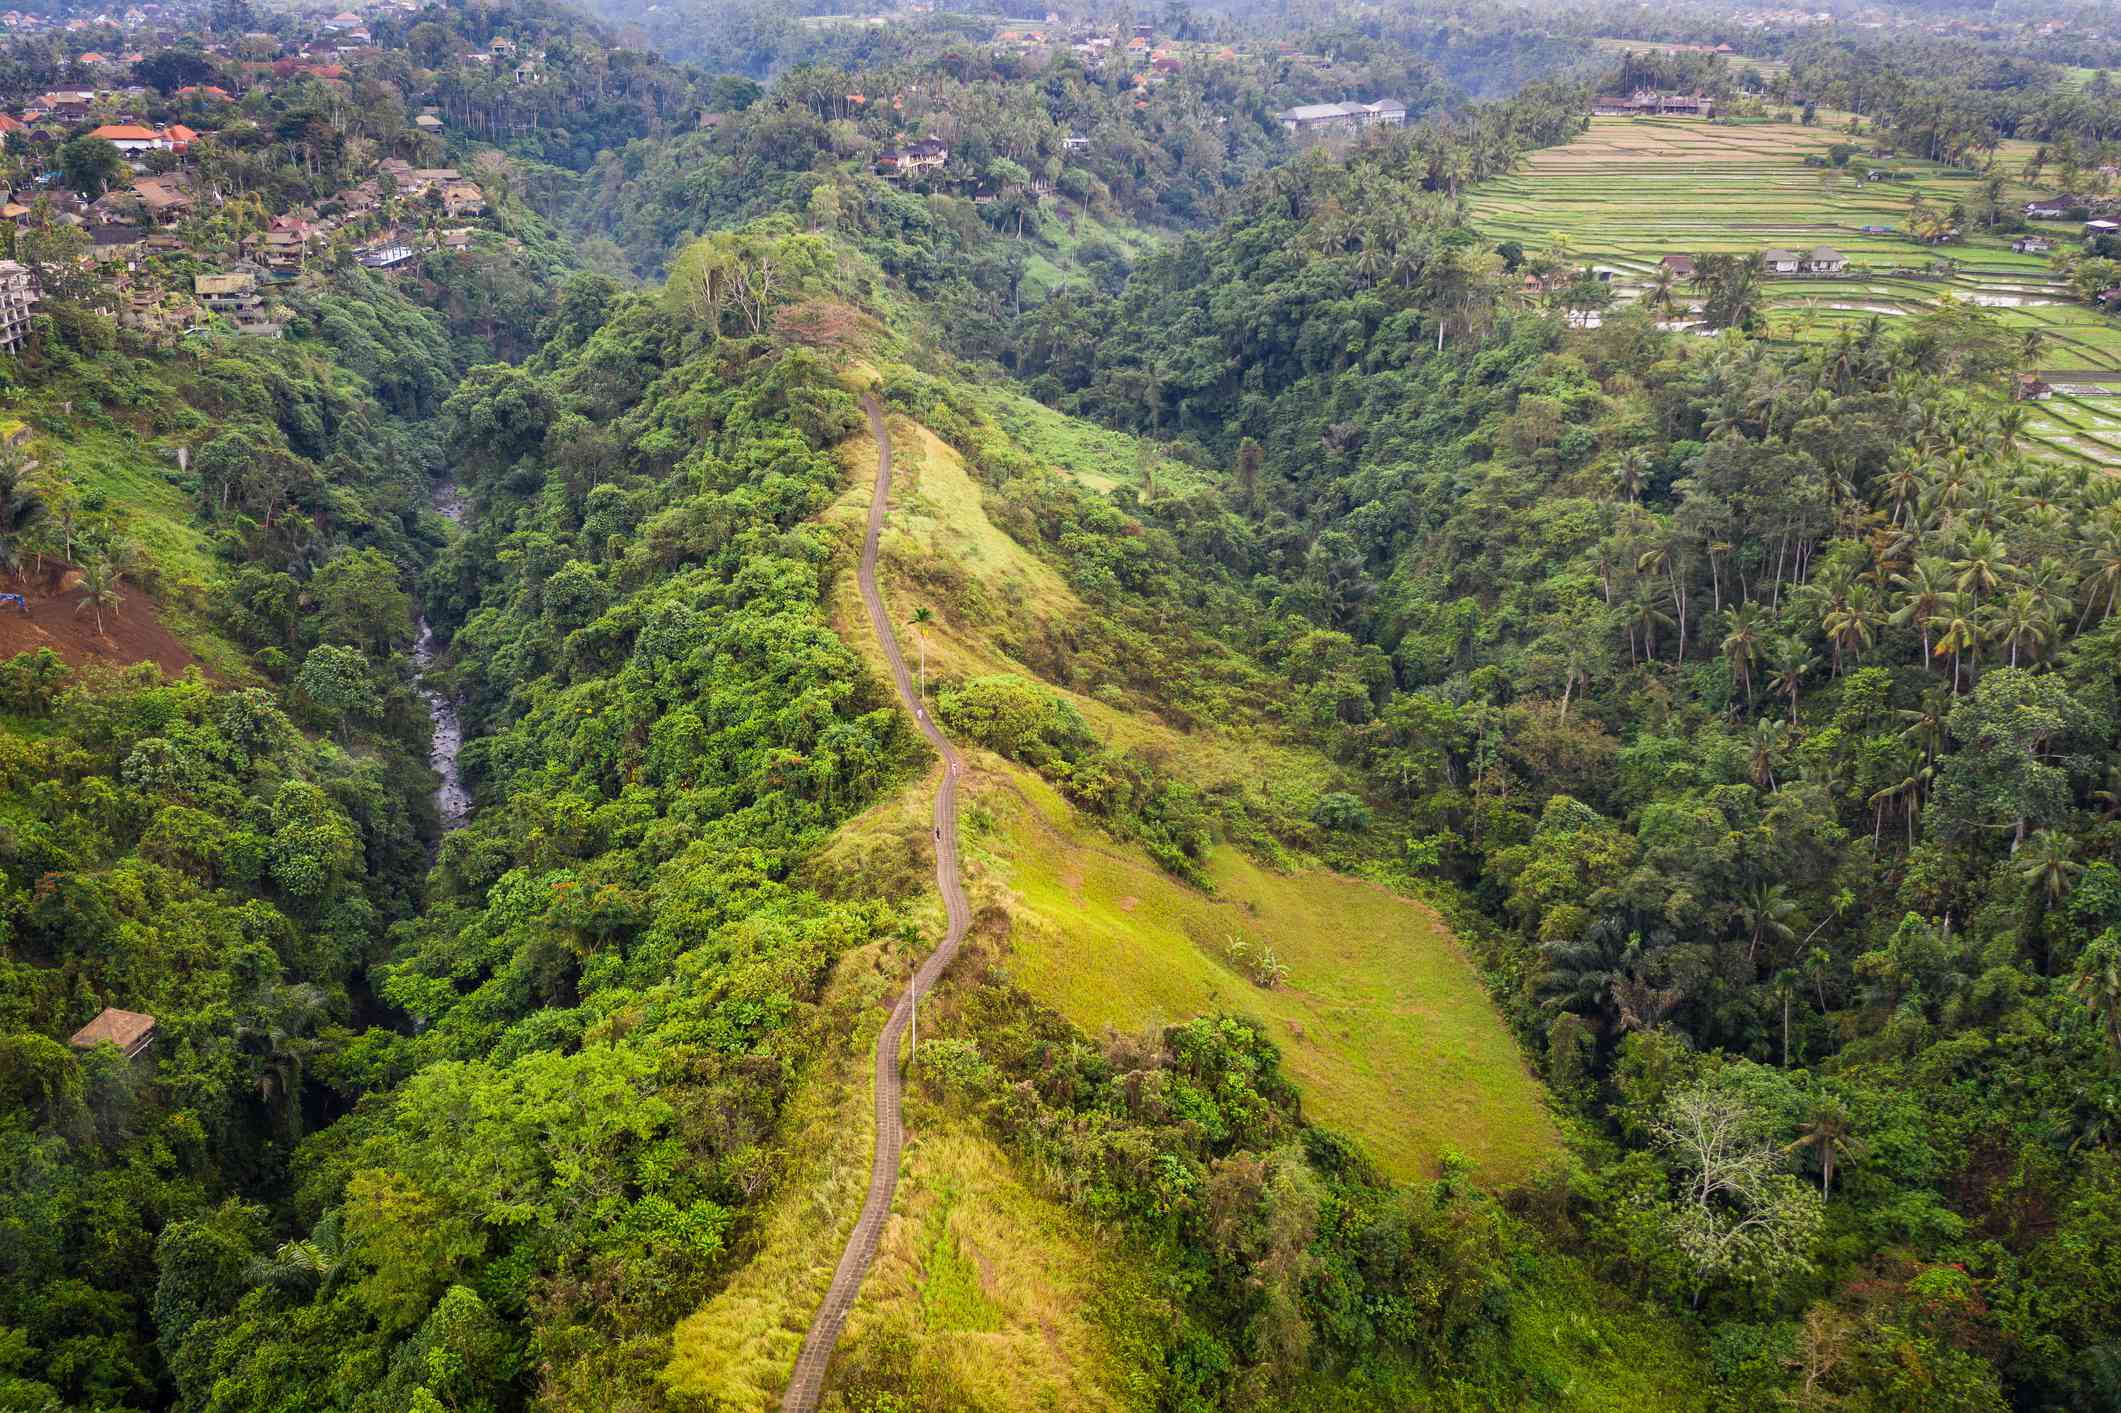 Aerial view of the famous Campuhan ridge walk in Ubud, Bali island in Indonesia.